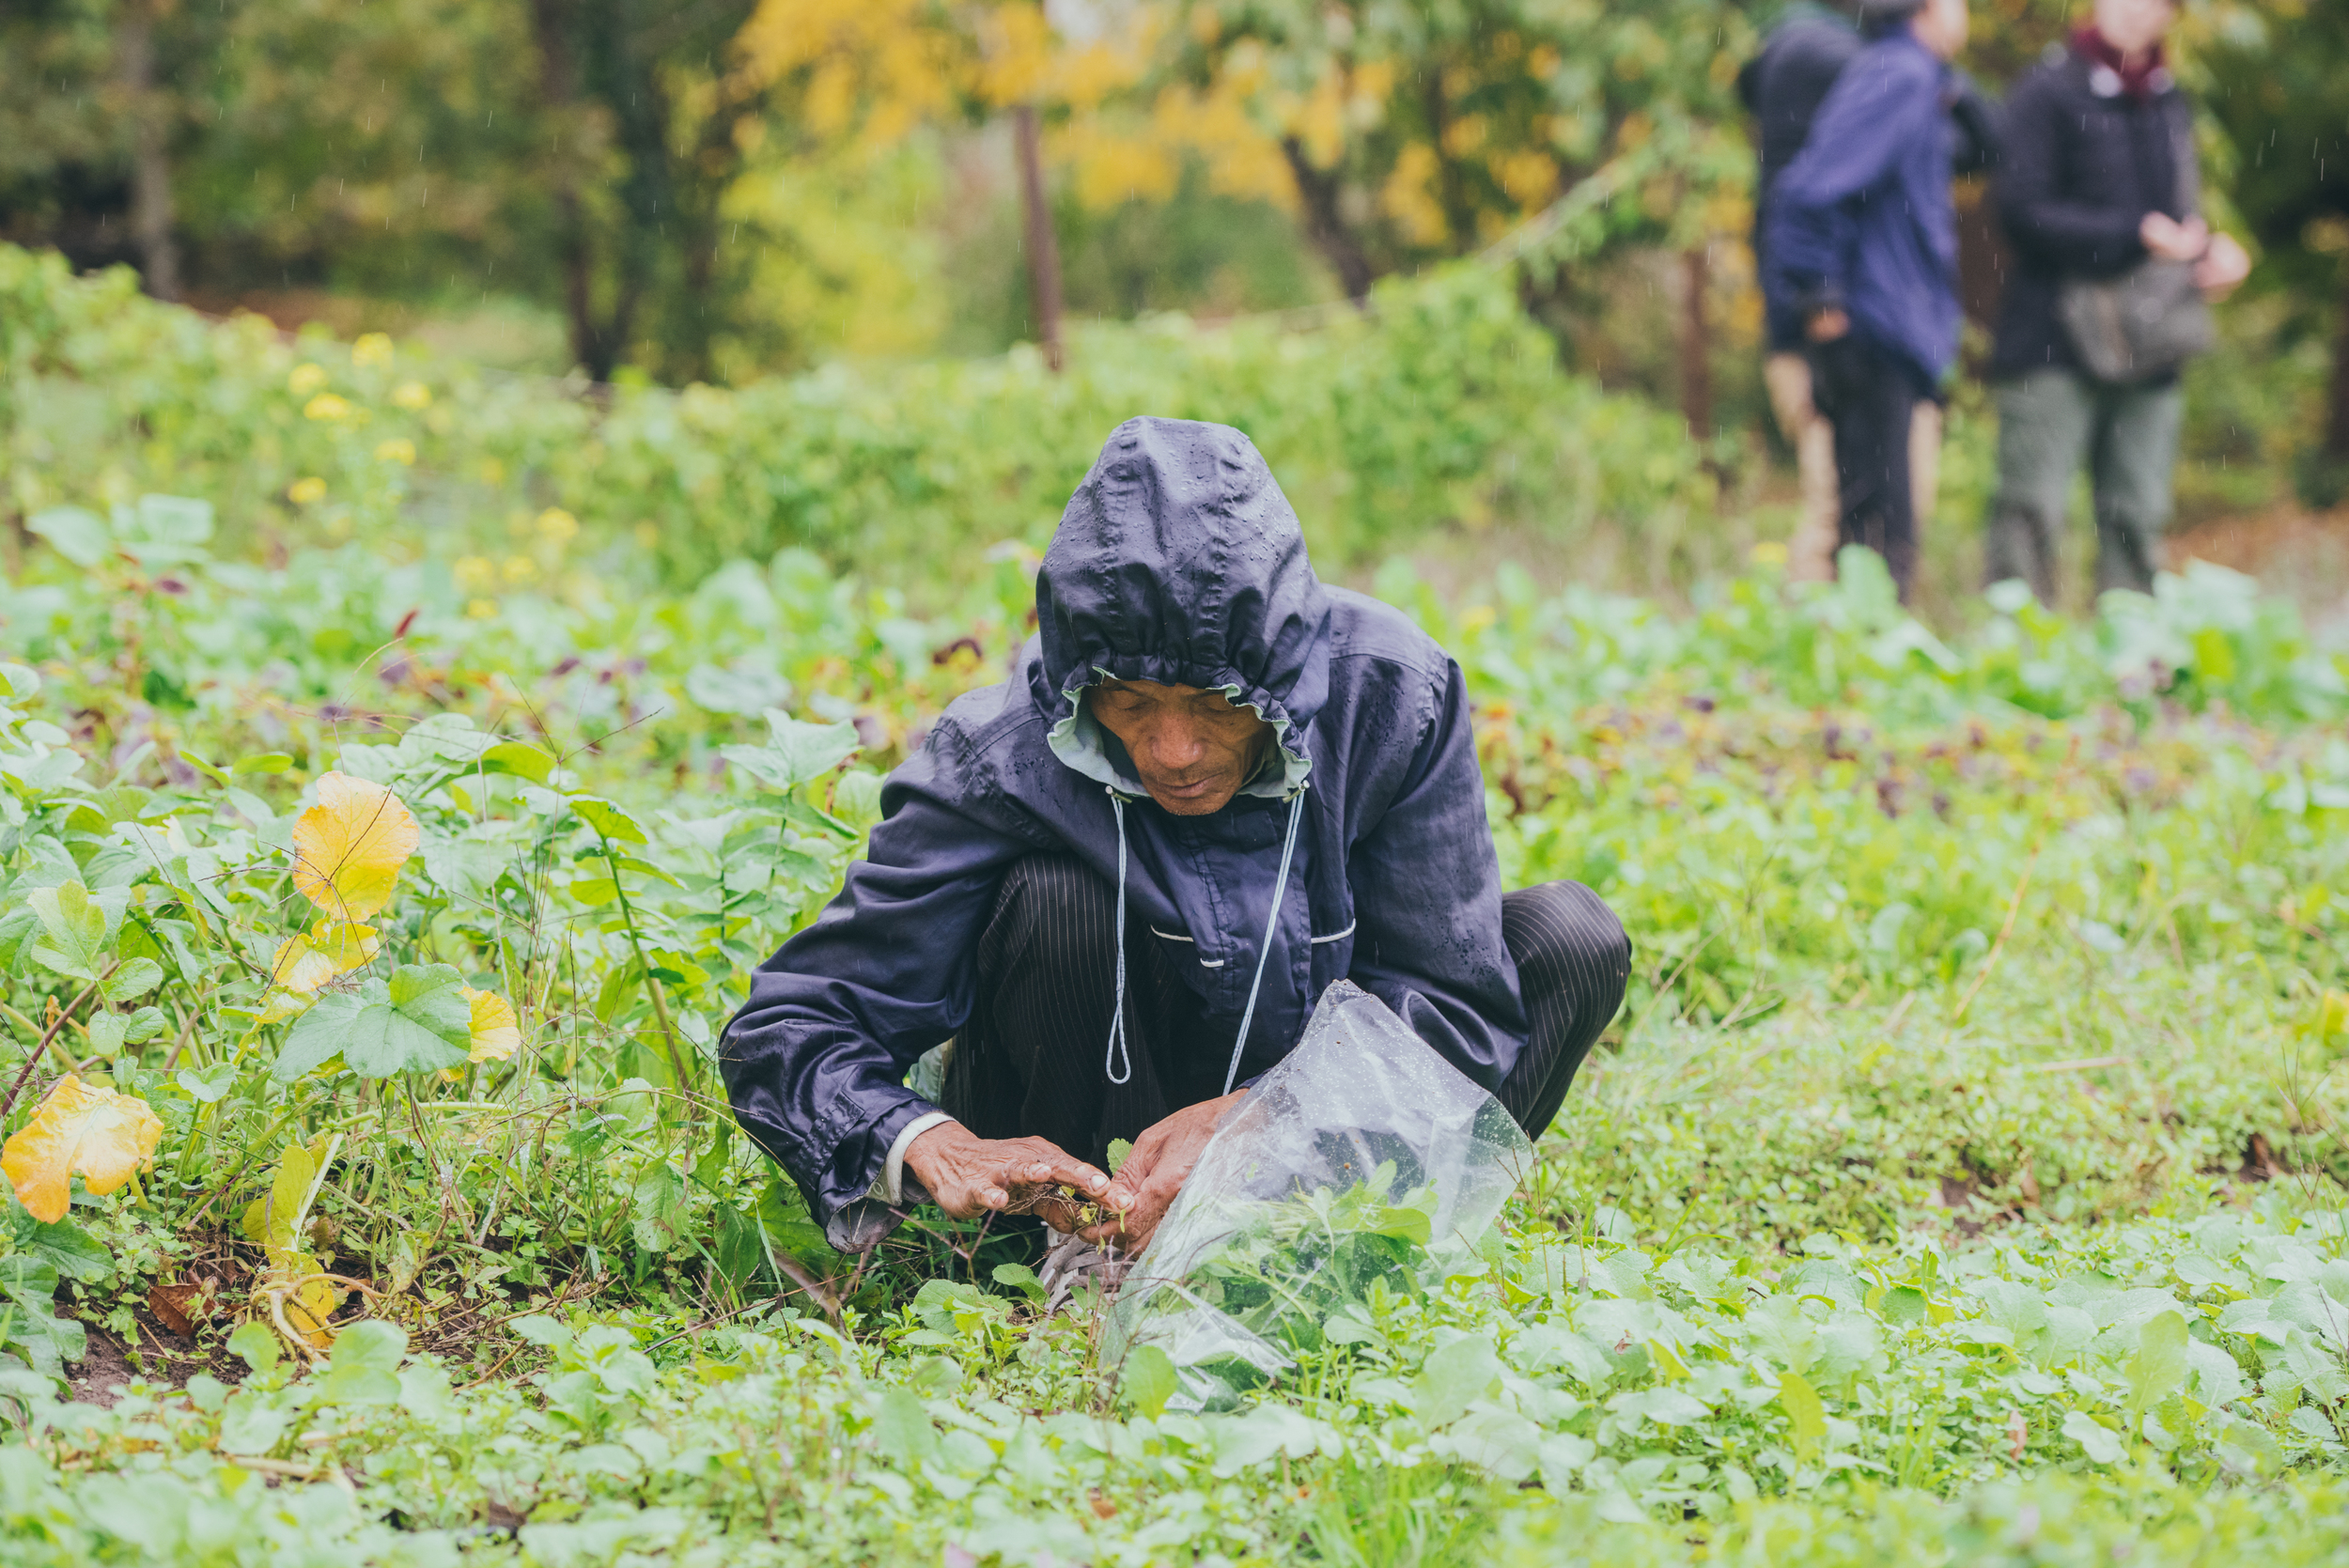 Refuge Garden - Mercy Corps NW Another Look 10-30-15 2015-15.jpg